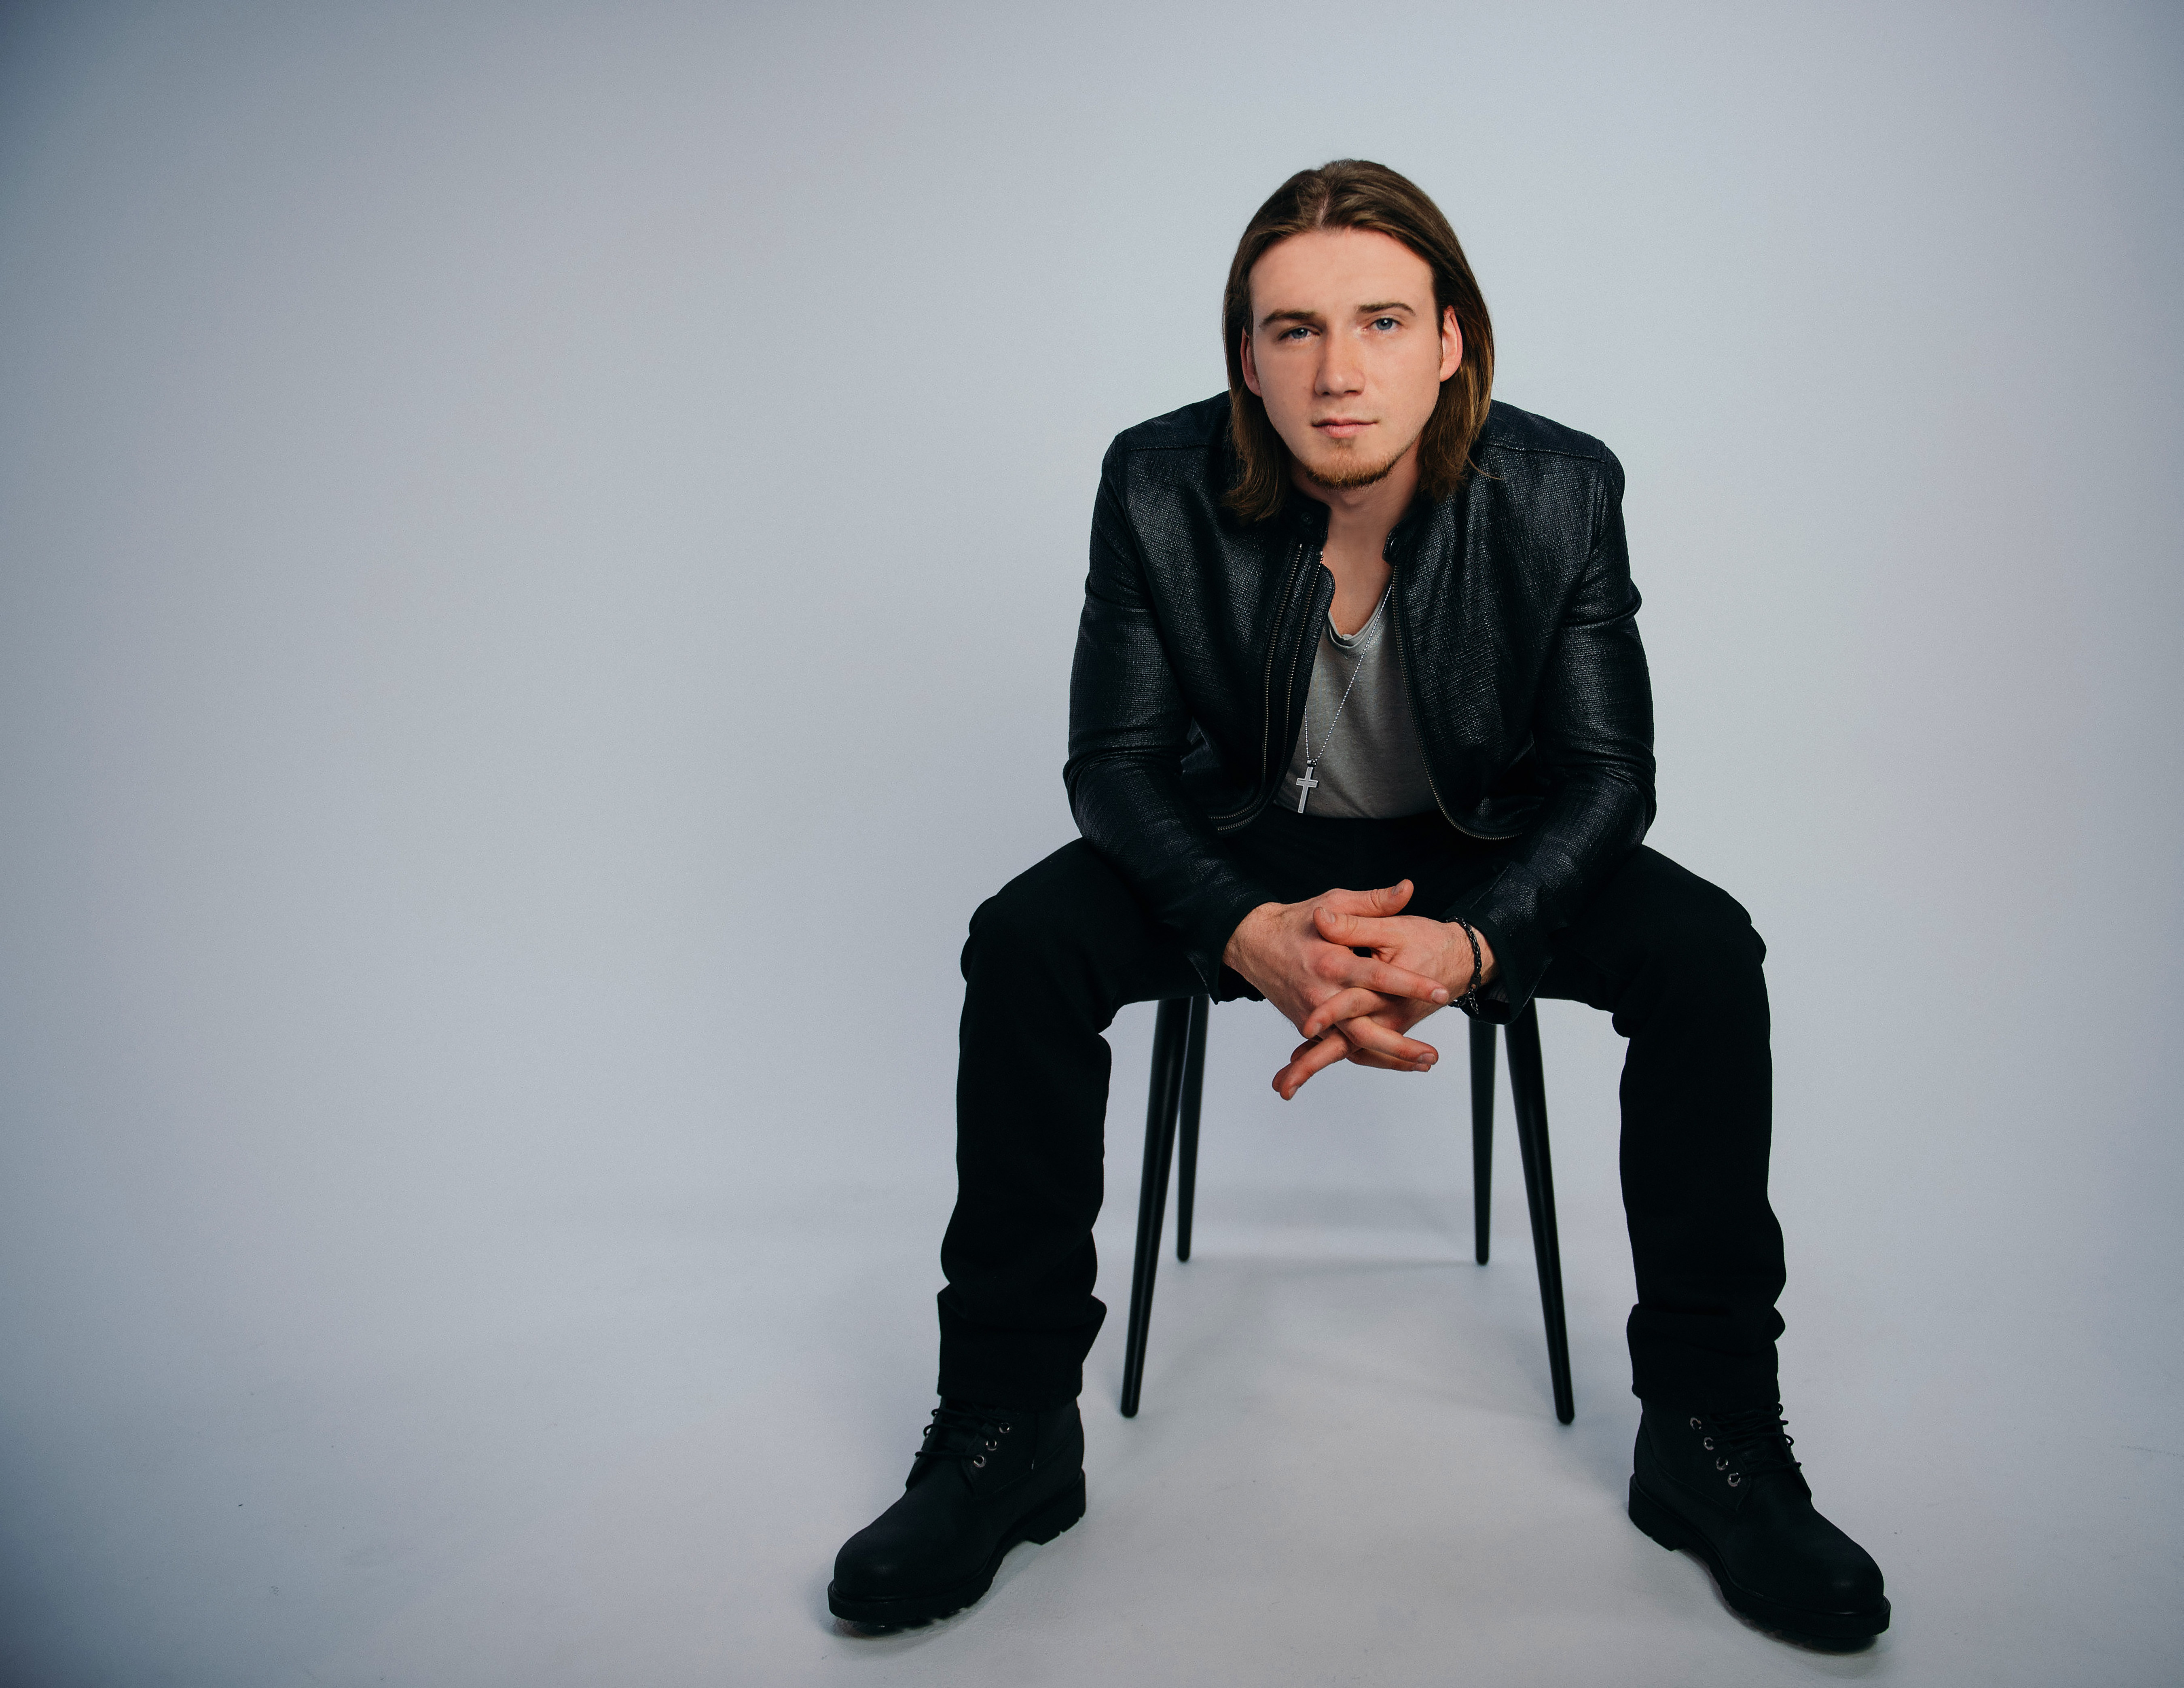 Morgan Wallen Brings His Voice To Nashville With Debut Ep Sounds Like Nashville